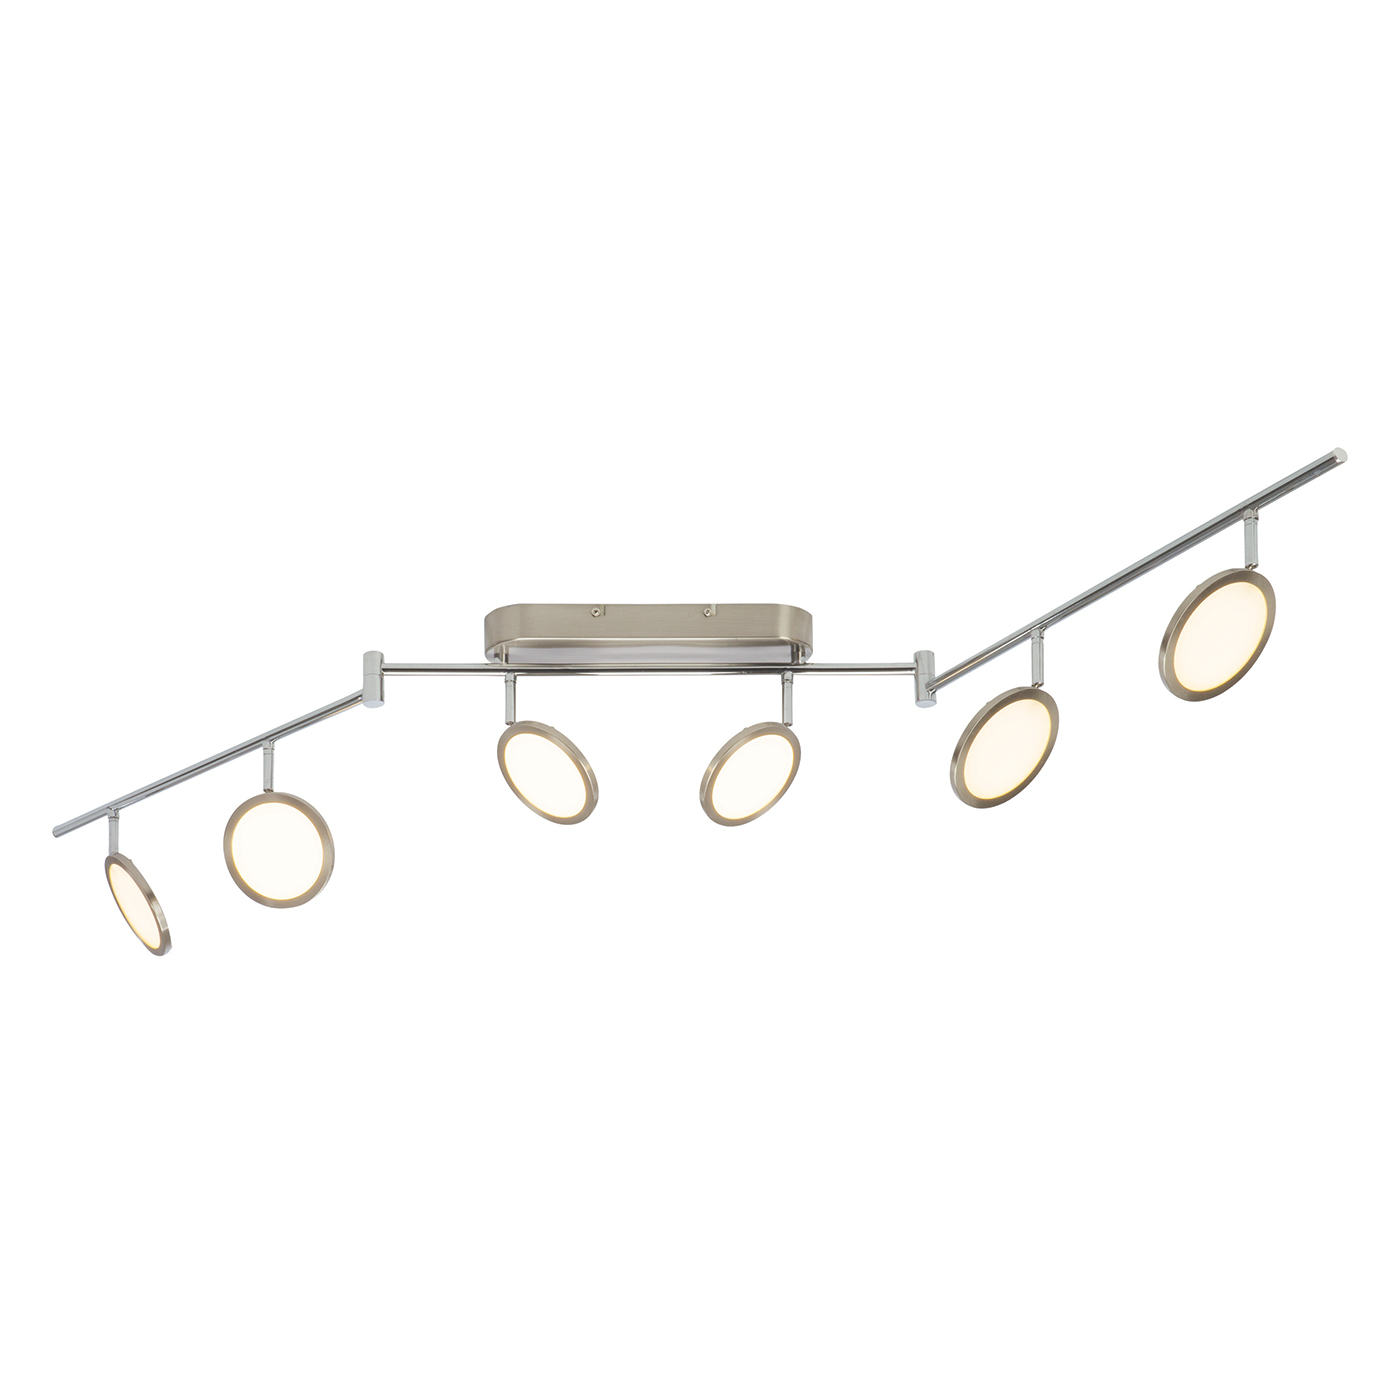 Endon Pluto ceiling spotlight folding bar 6x 5W Satin nickel effect opal plastic Thumbnail 1